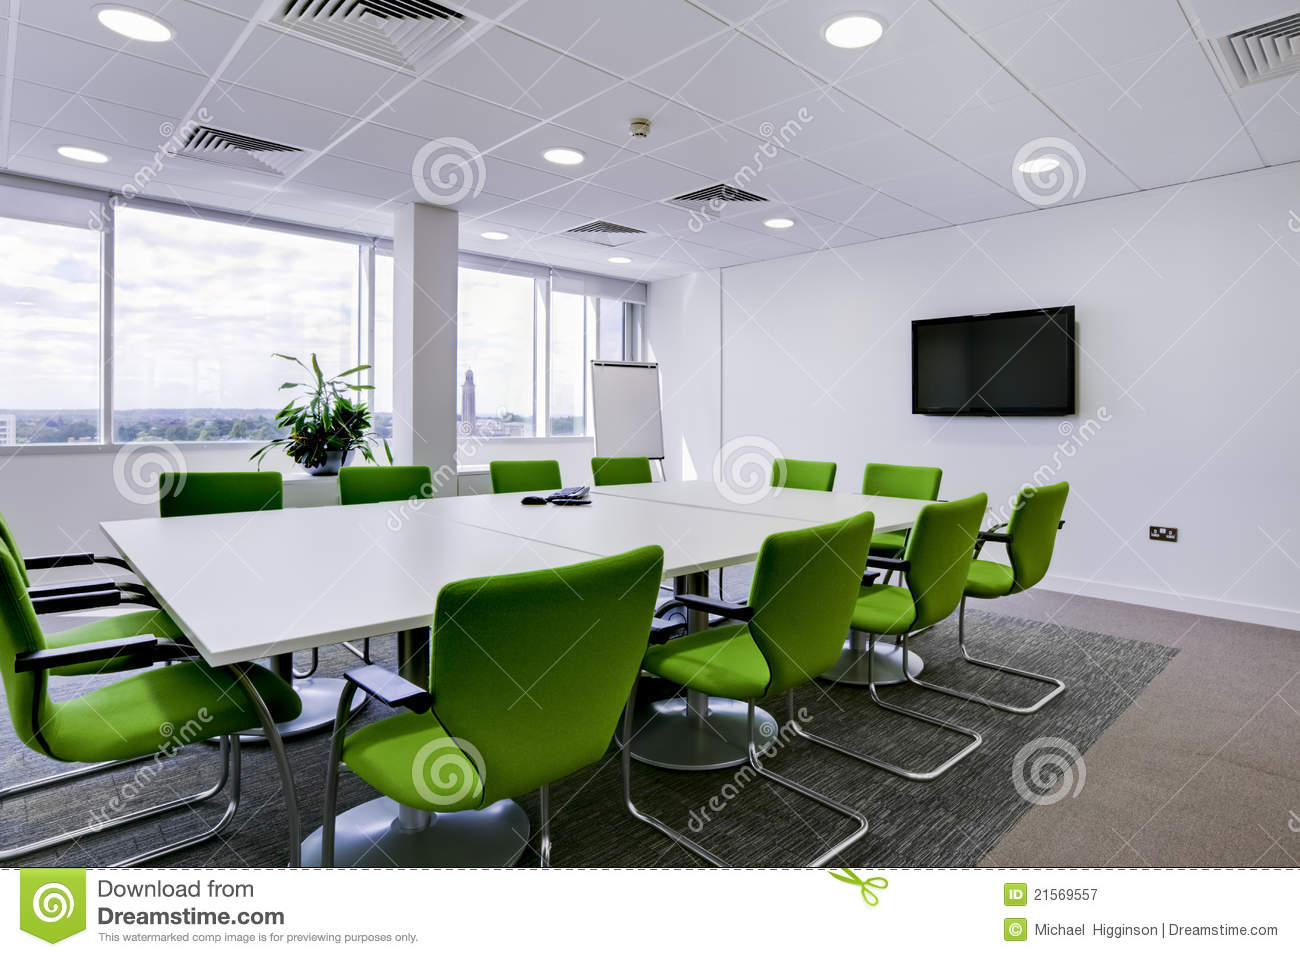 Modern office boardroom stock image image of white for Office images